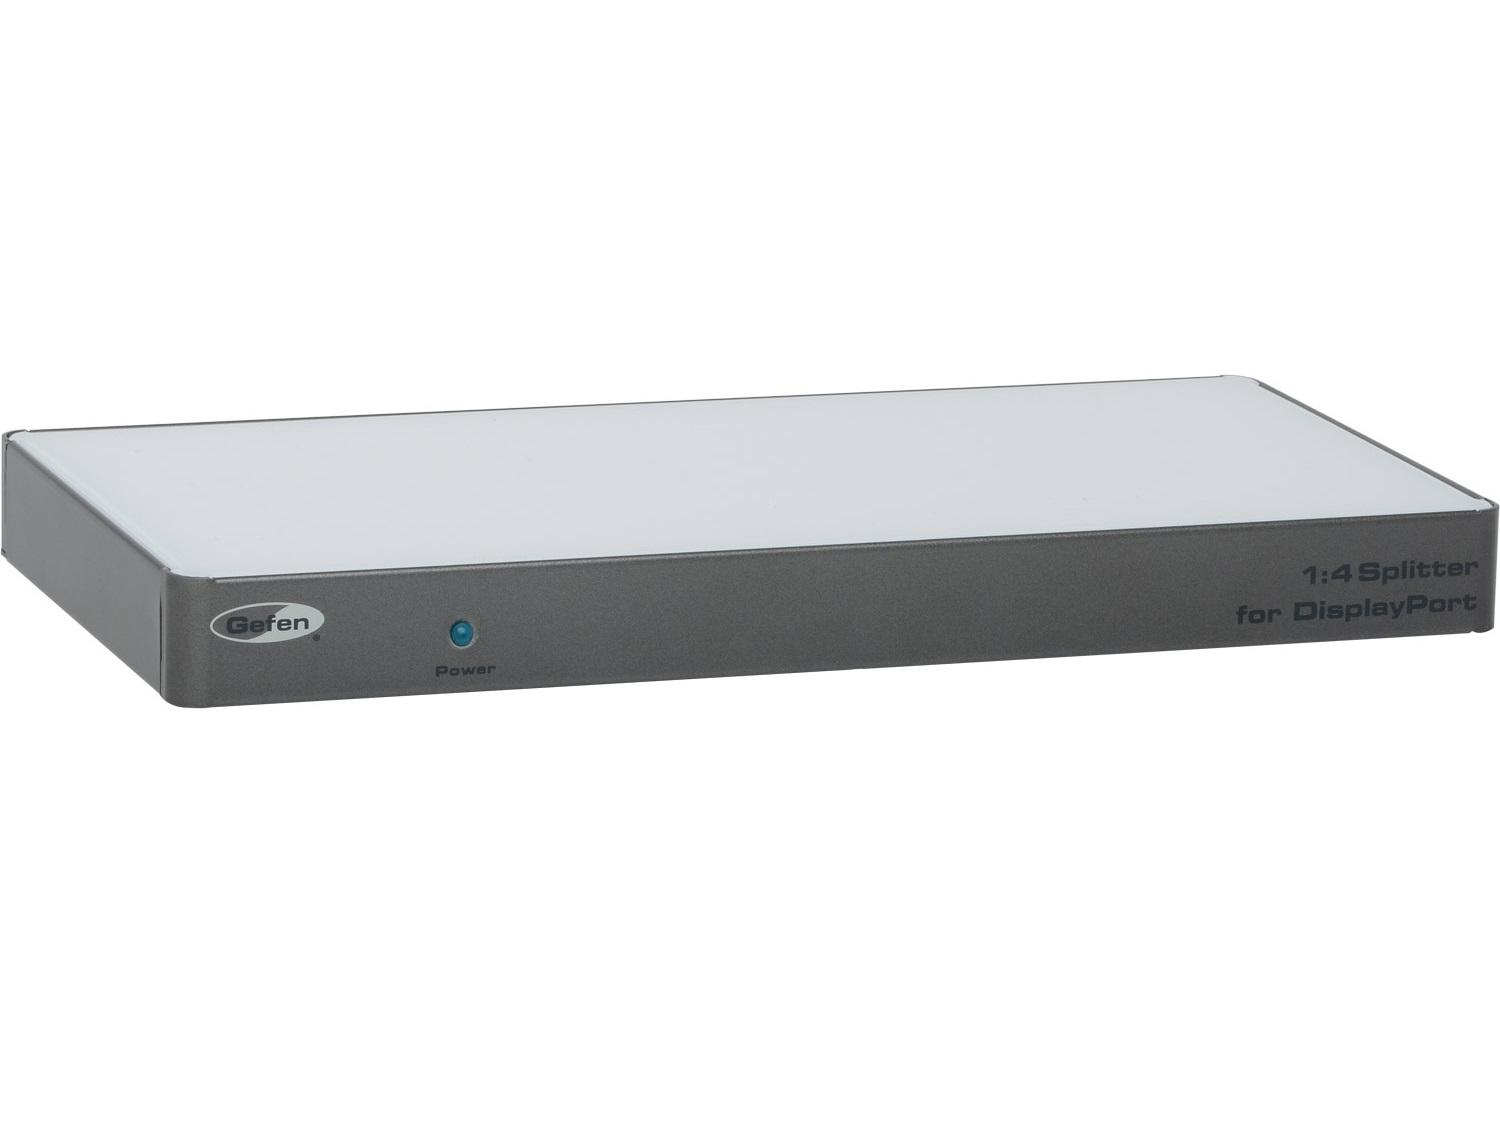 EXT-DP-144 1x4 DisplayPort Splitter/Amplifier by Gefen